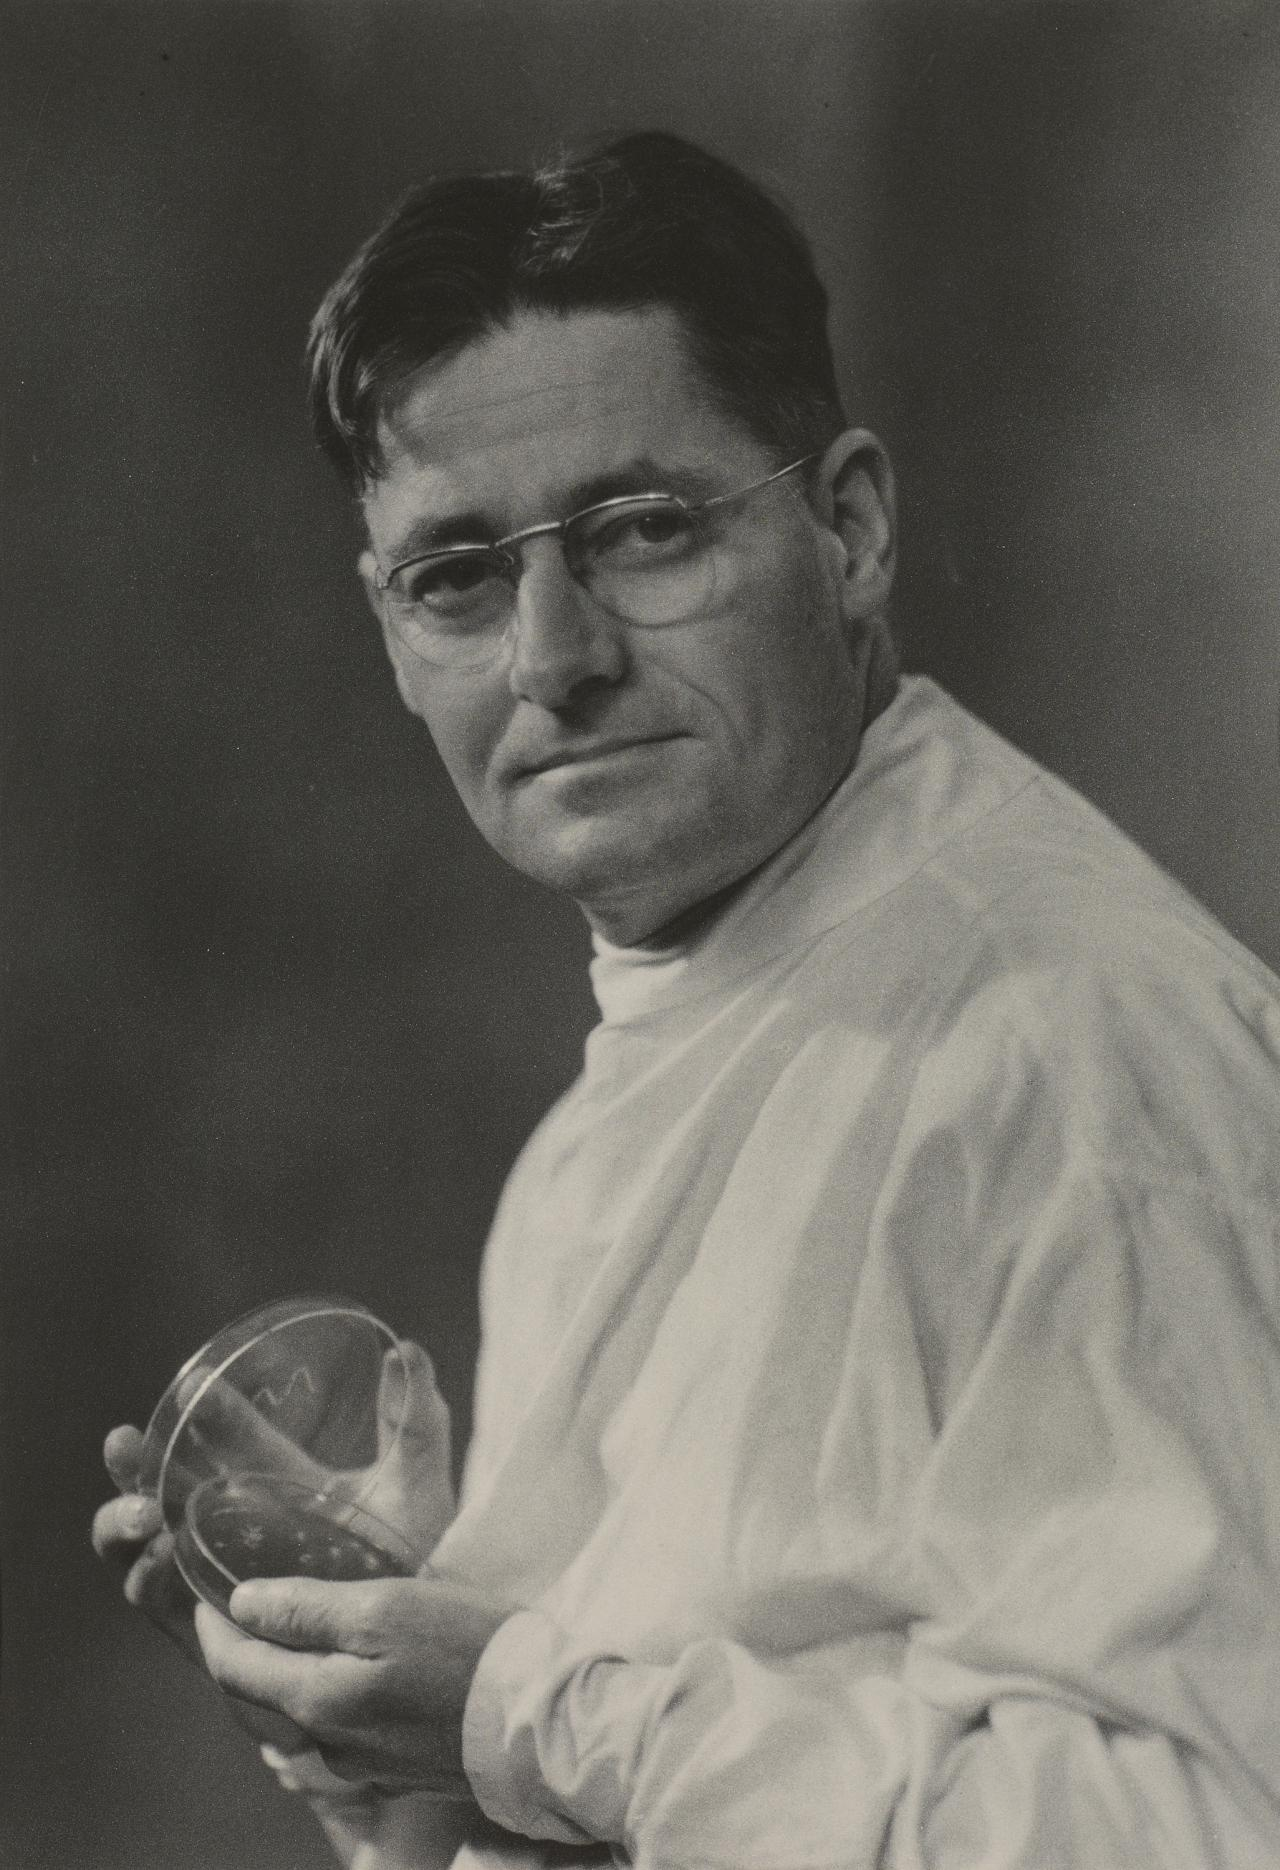 Sir Howard Florey